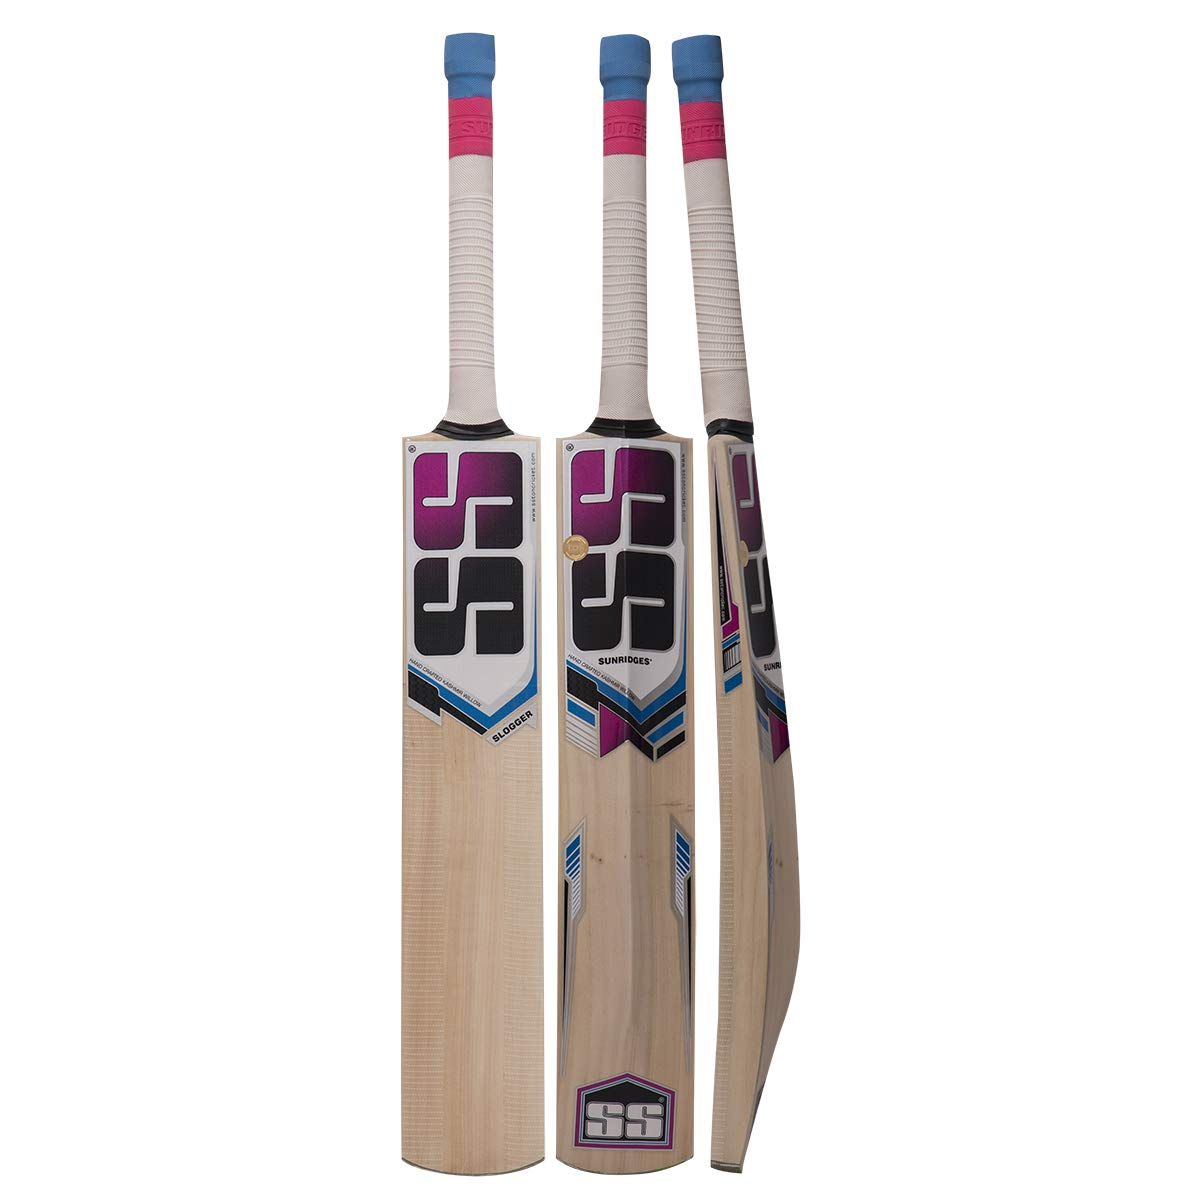 SS Slogger Cricket Bat